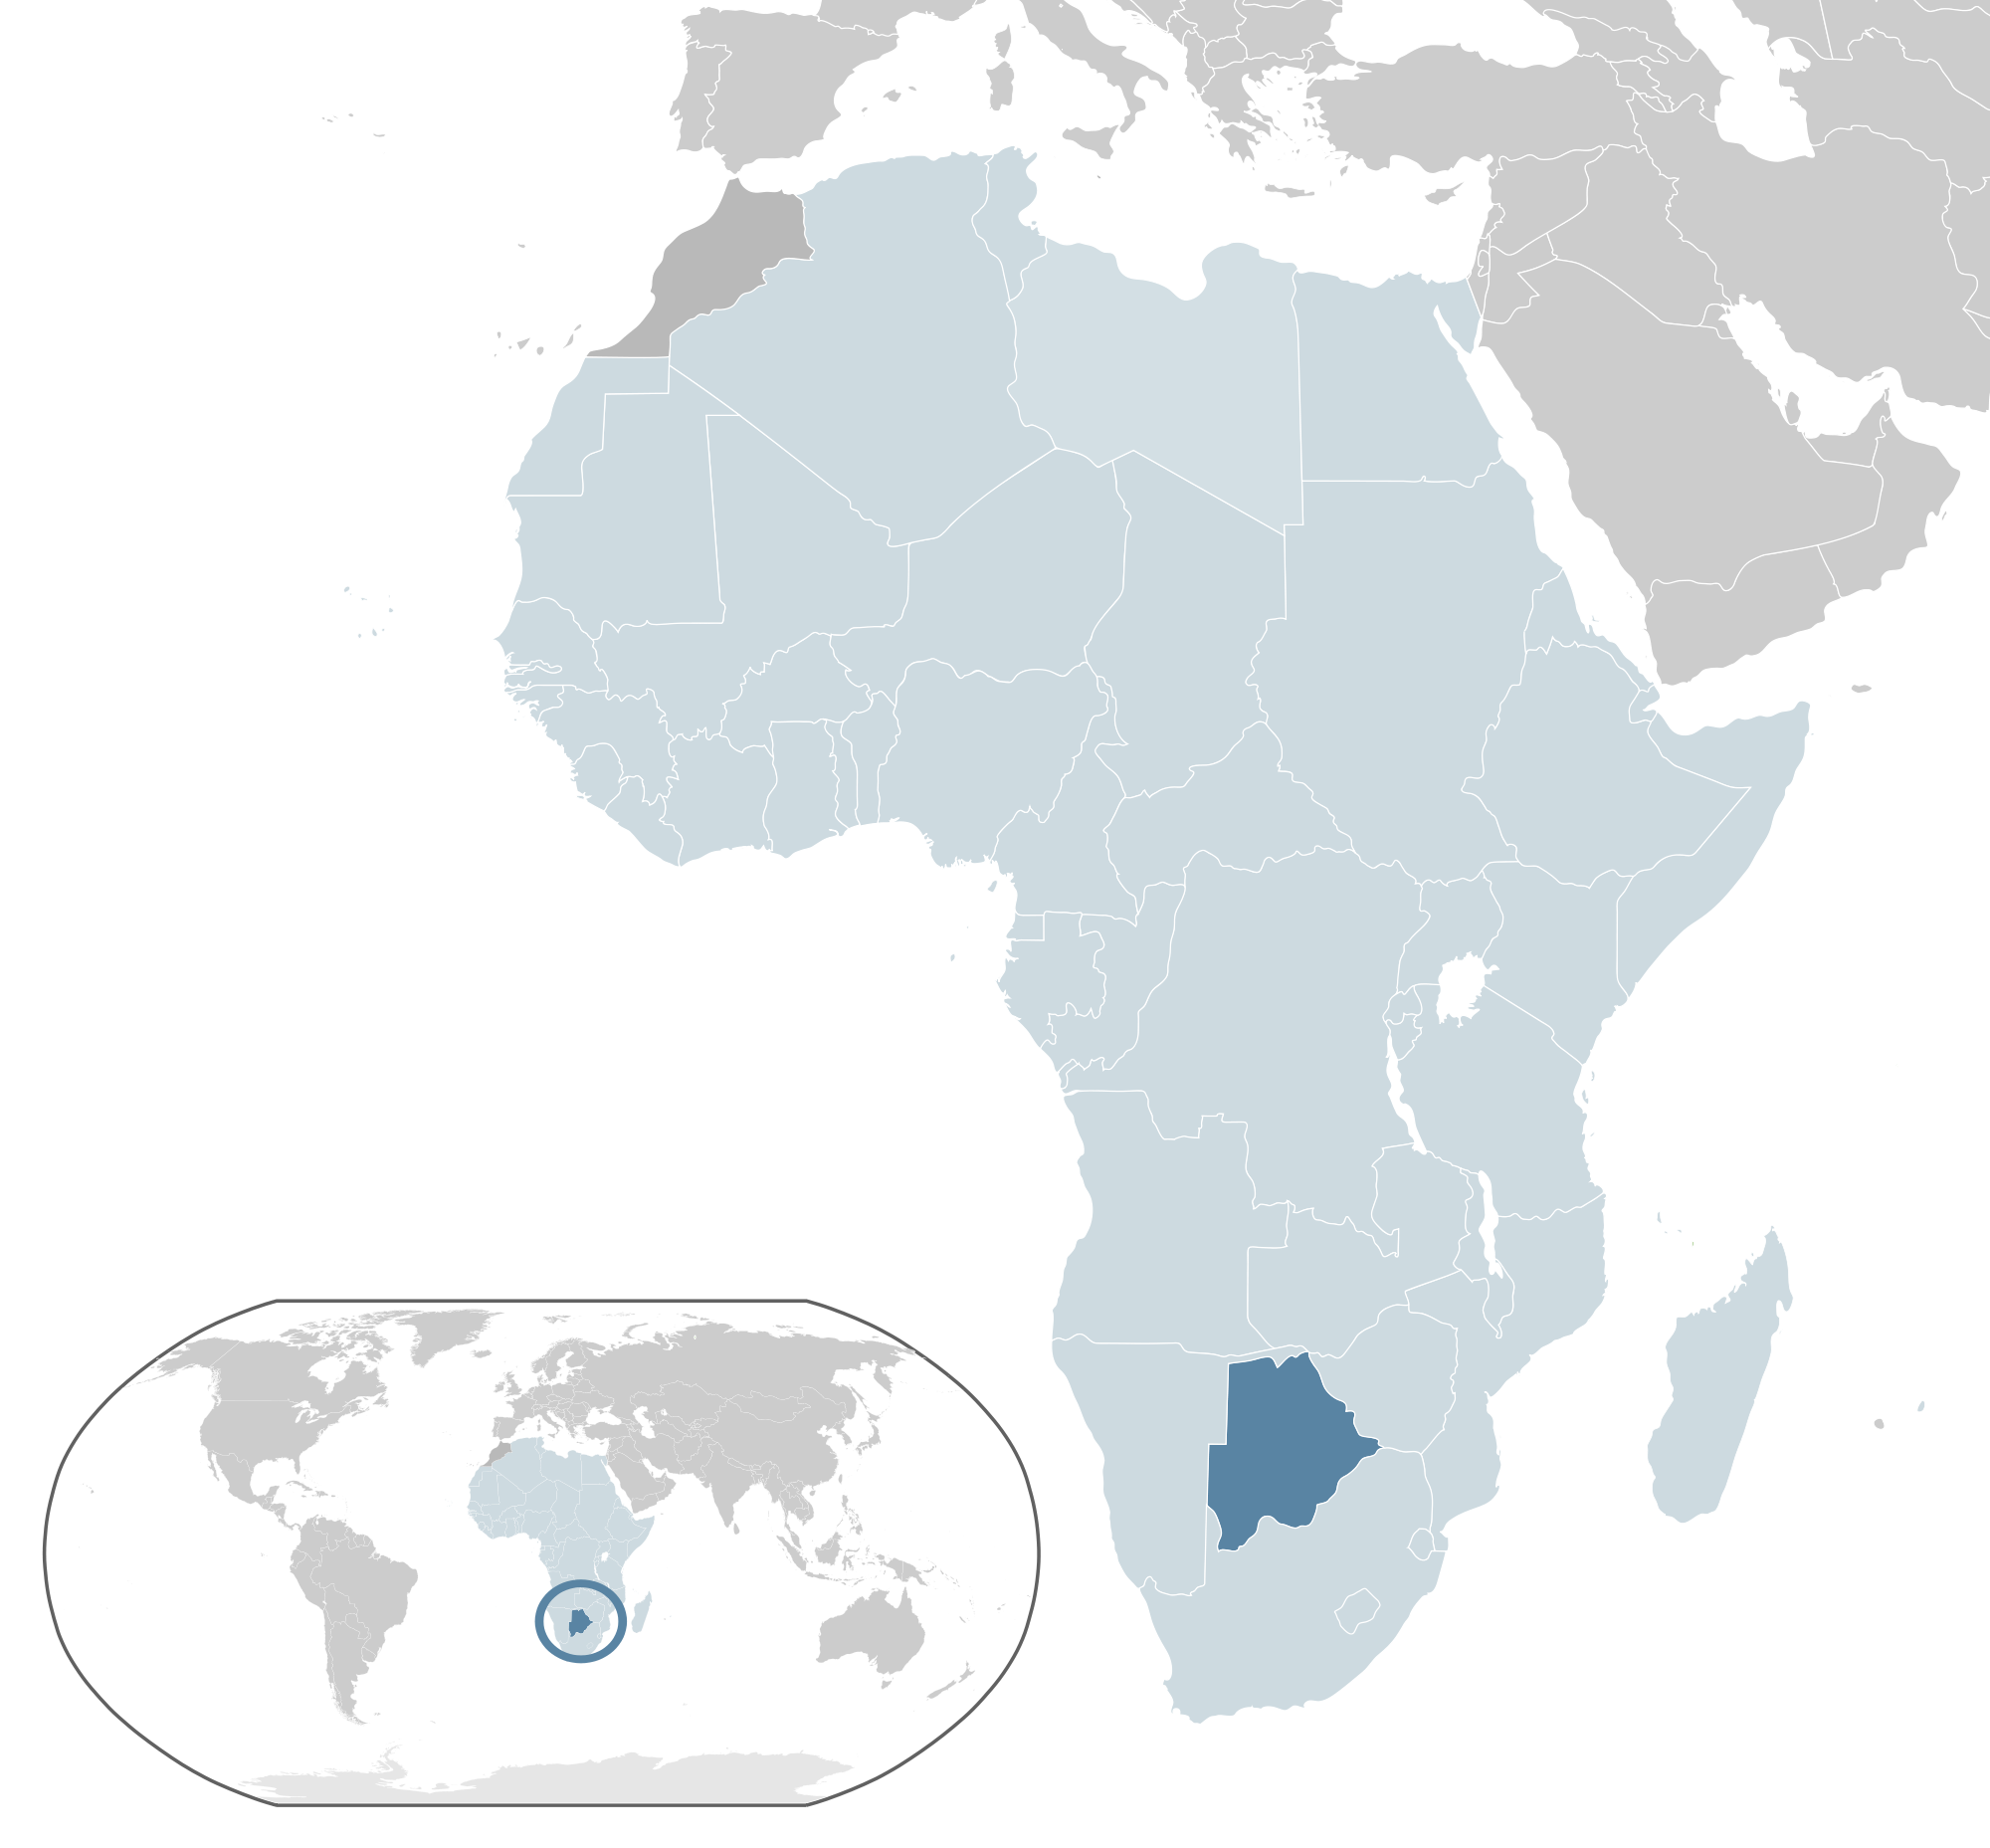 Location of the Botswana in the World Map